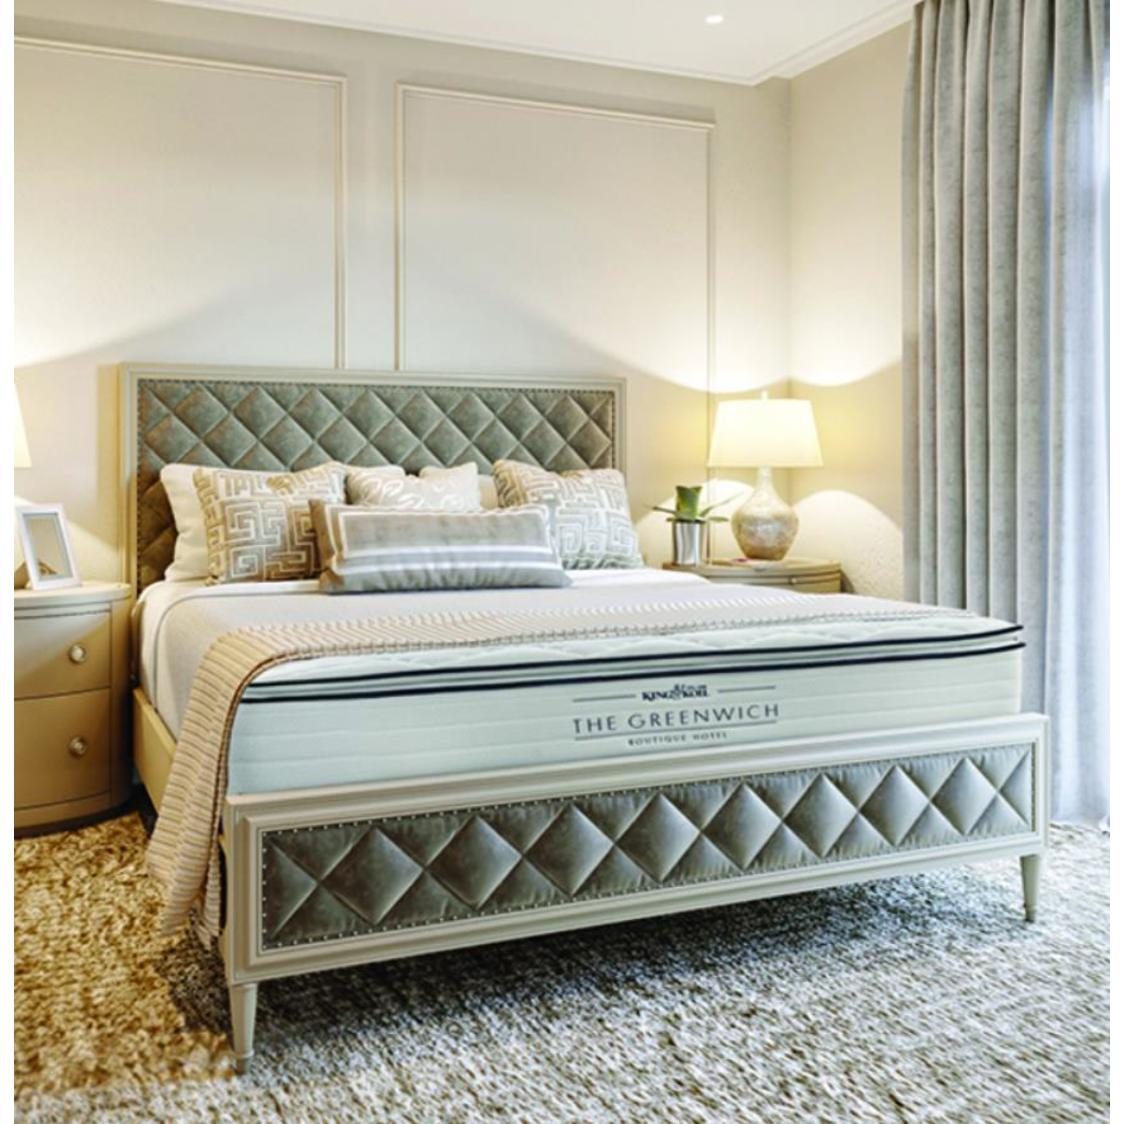 Boutique Hotel The Greenwich Pocketed Spring Mattress with Microgel ...